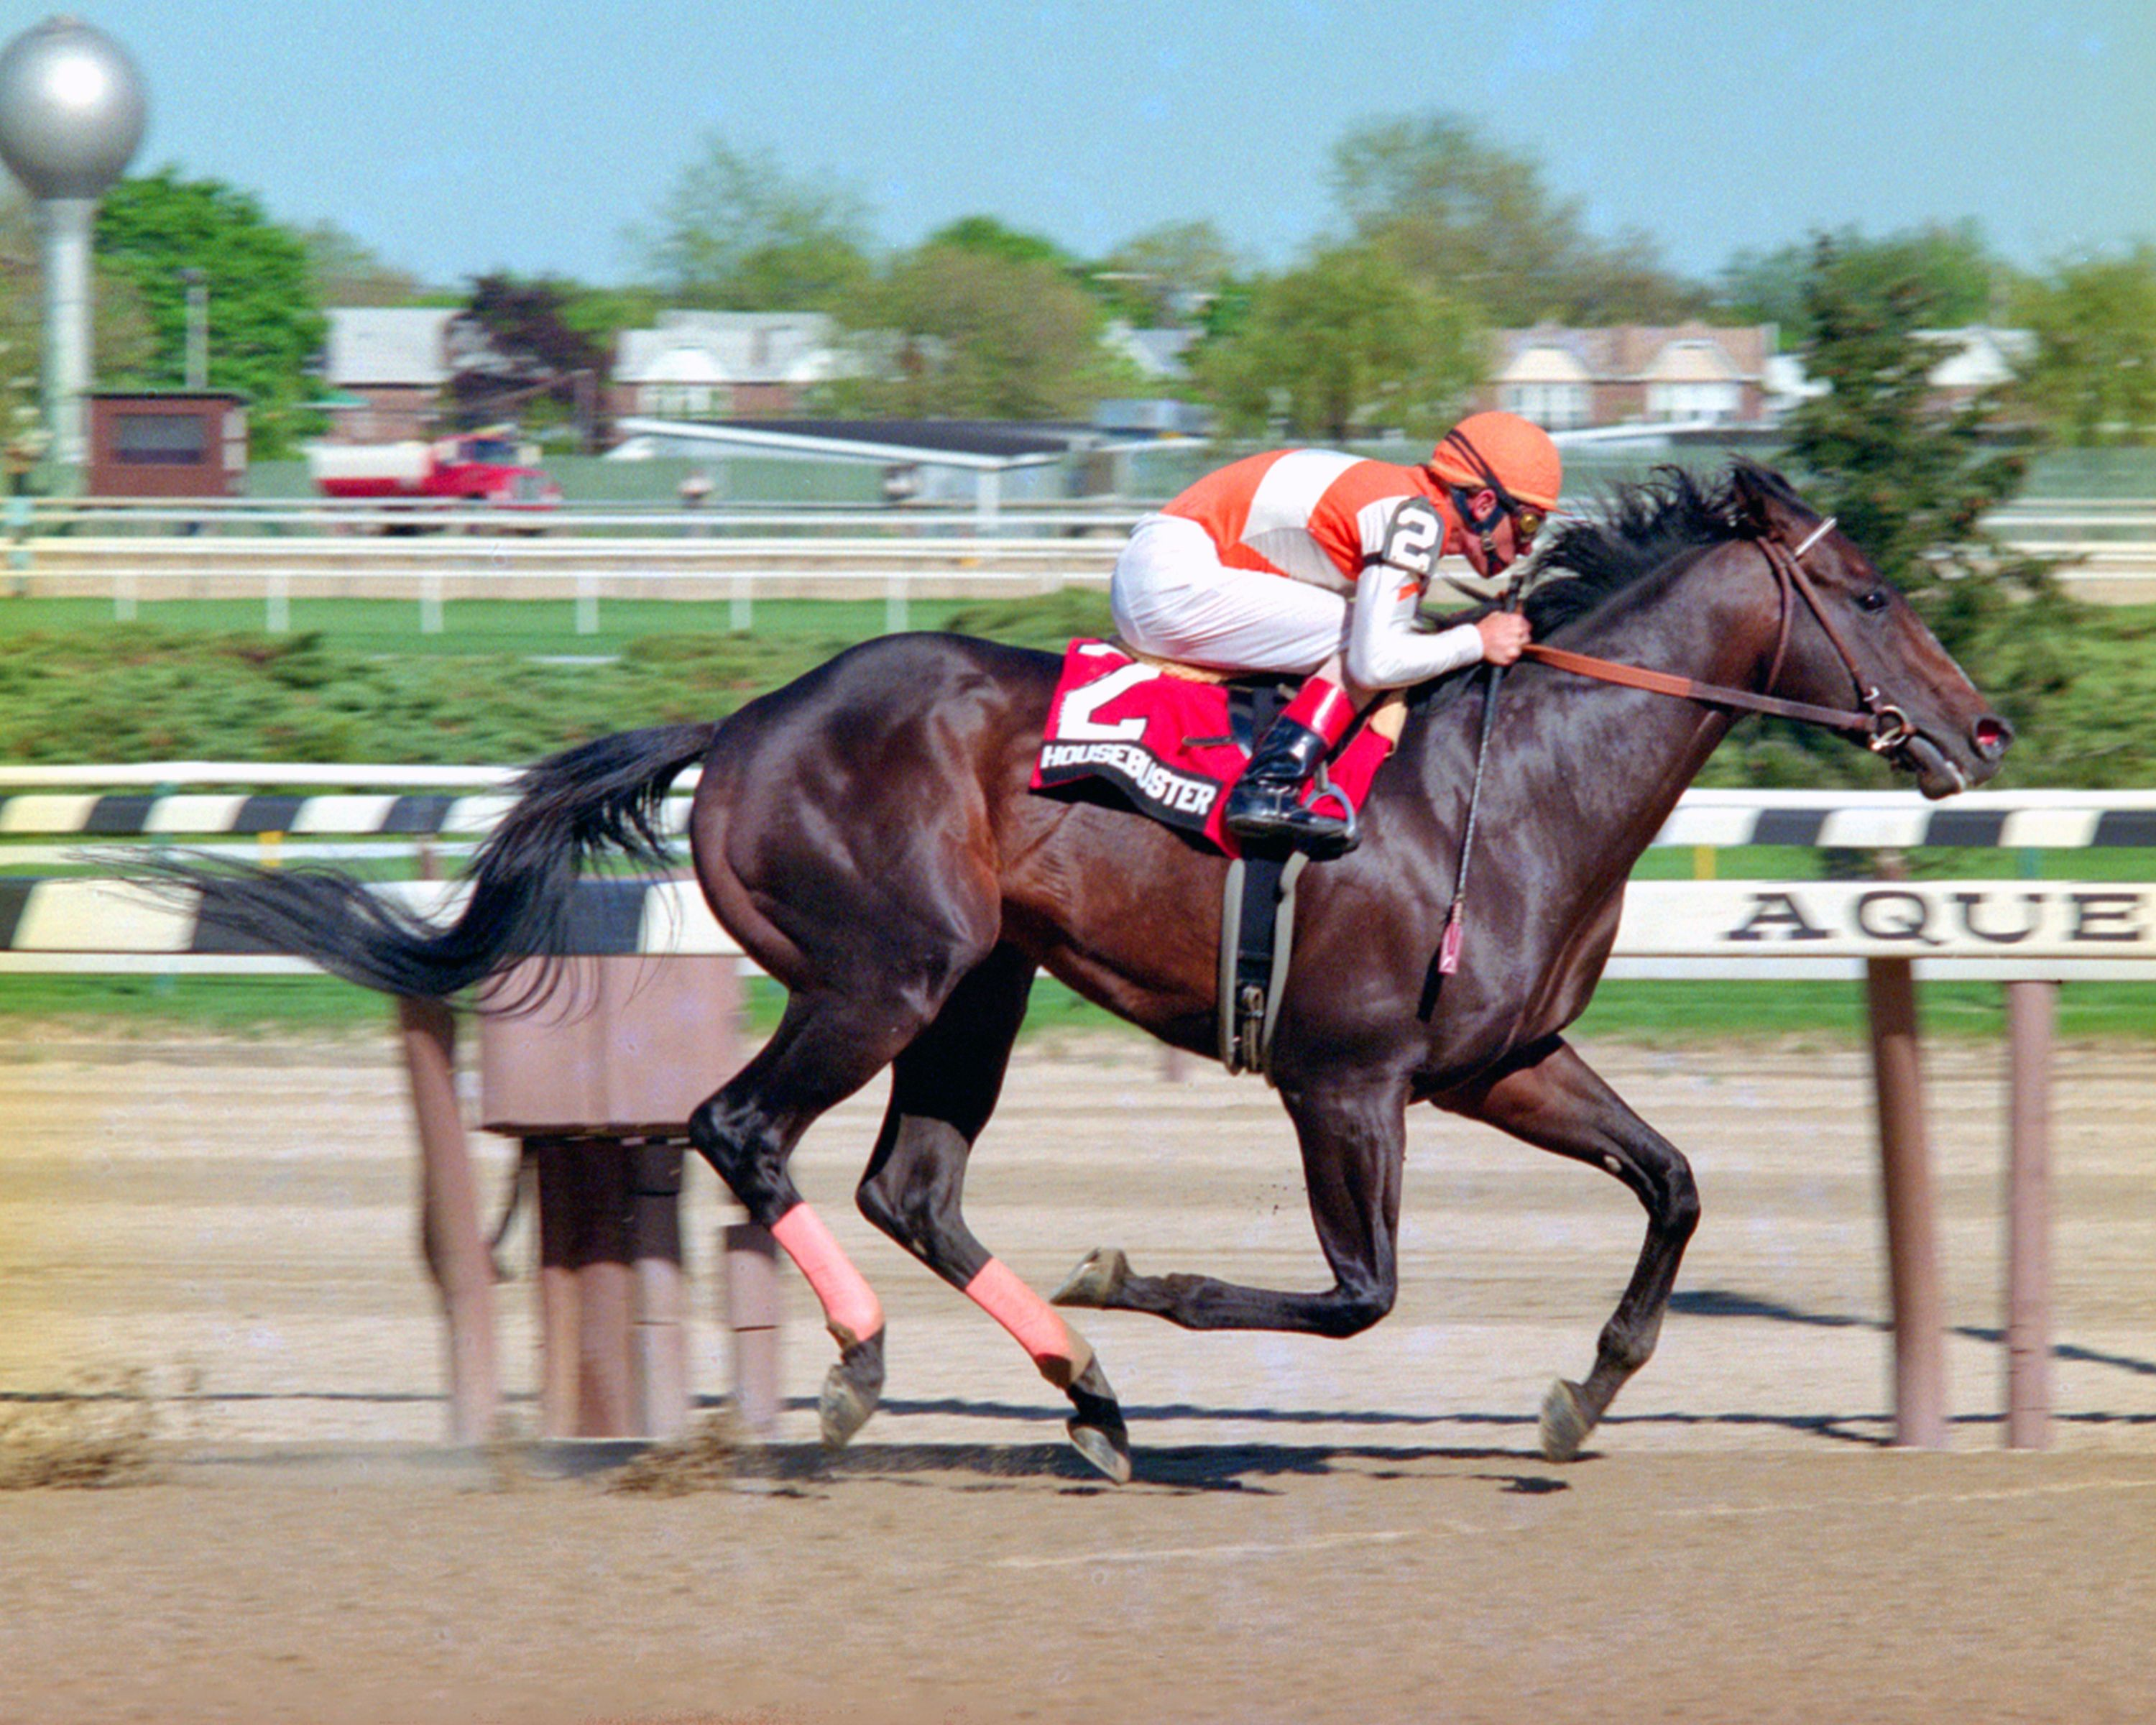 Housebuster, Craig Perret up (NYRA)